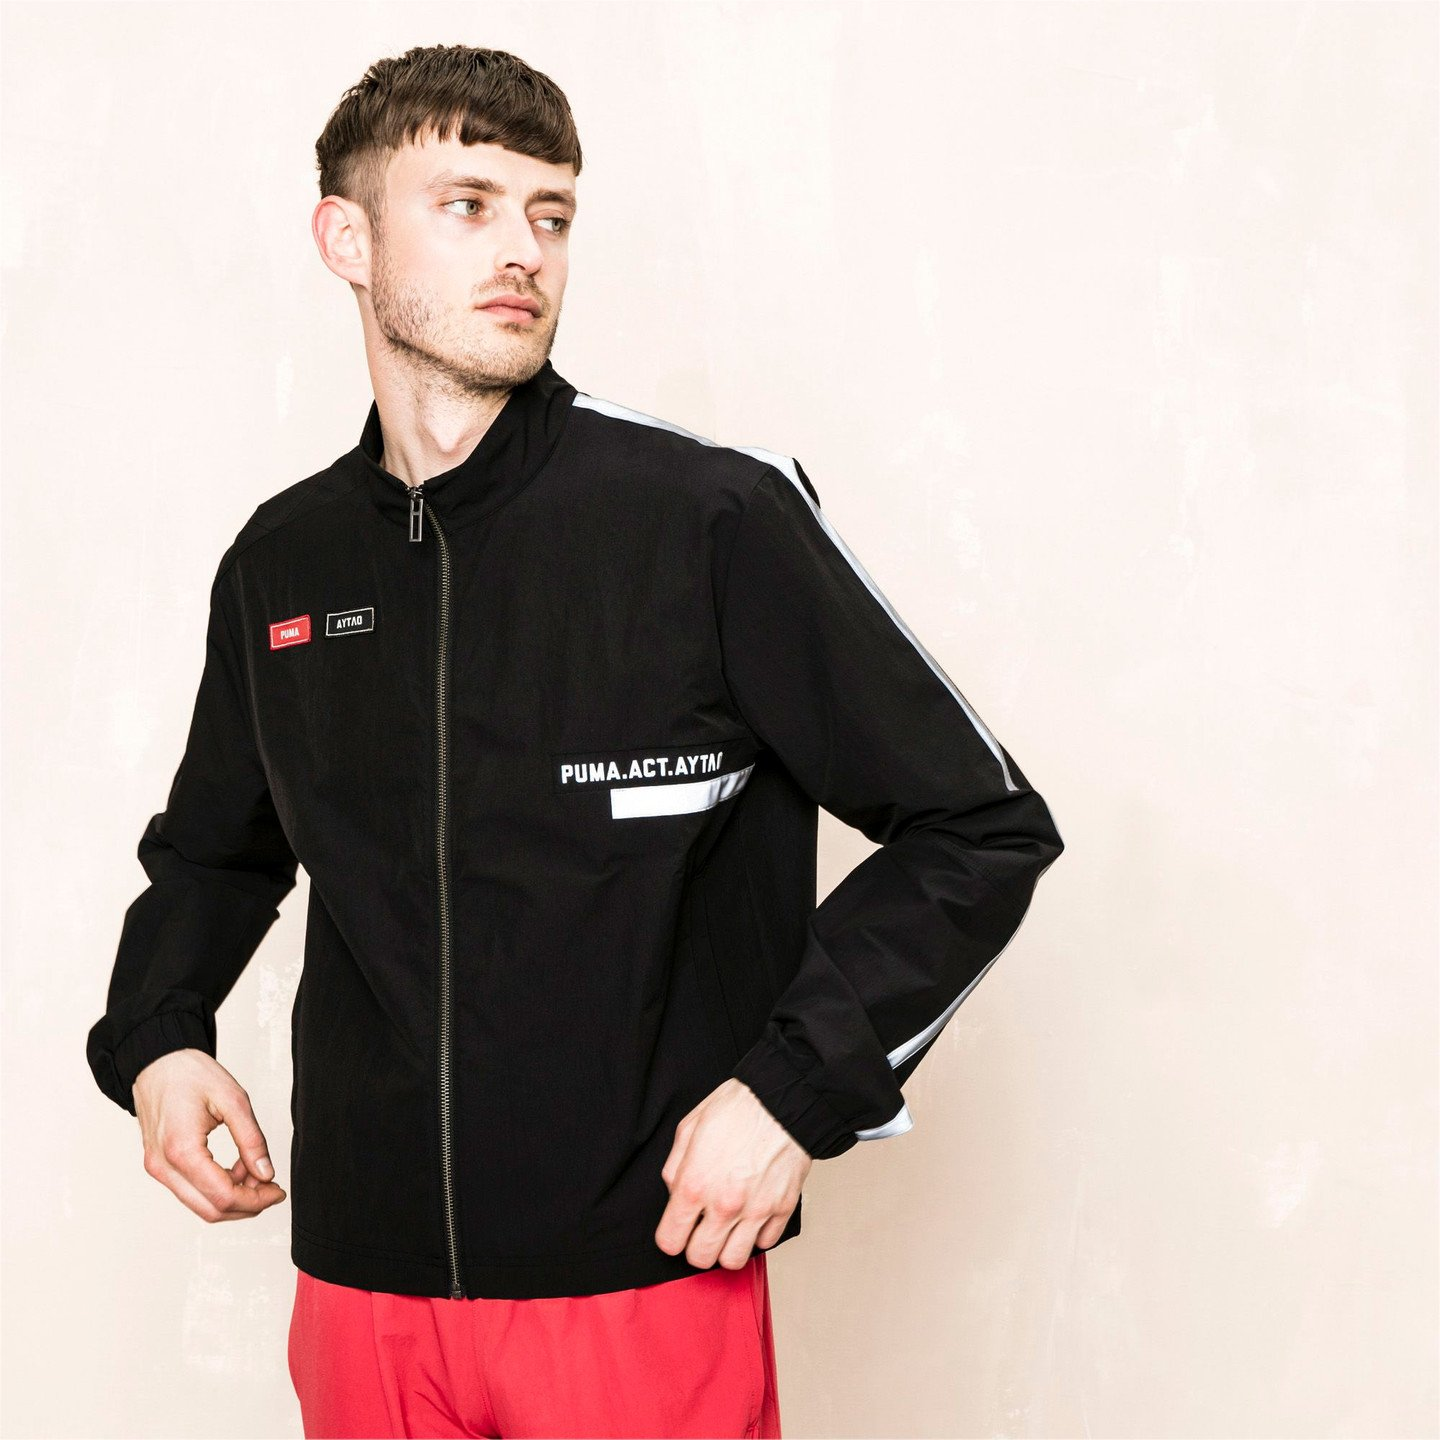 Puma Track Jacket x Outlaw Moscow Puma Black / Red / Reflective Silver 576872 01